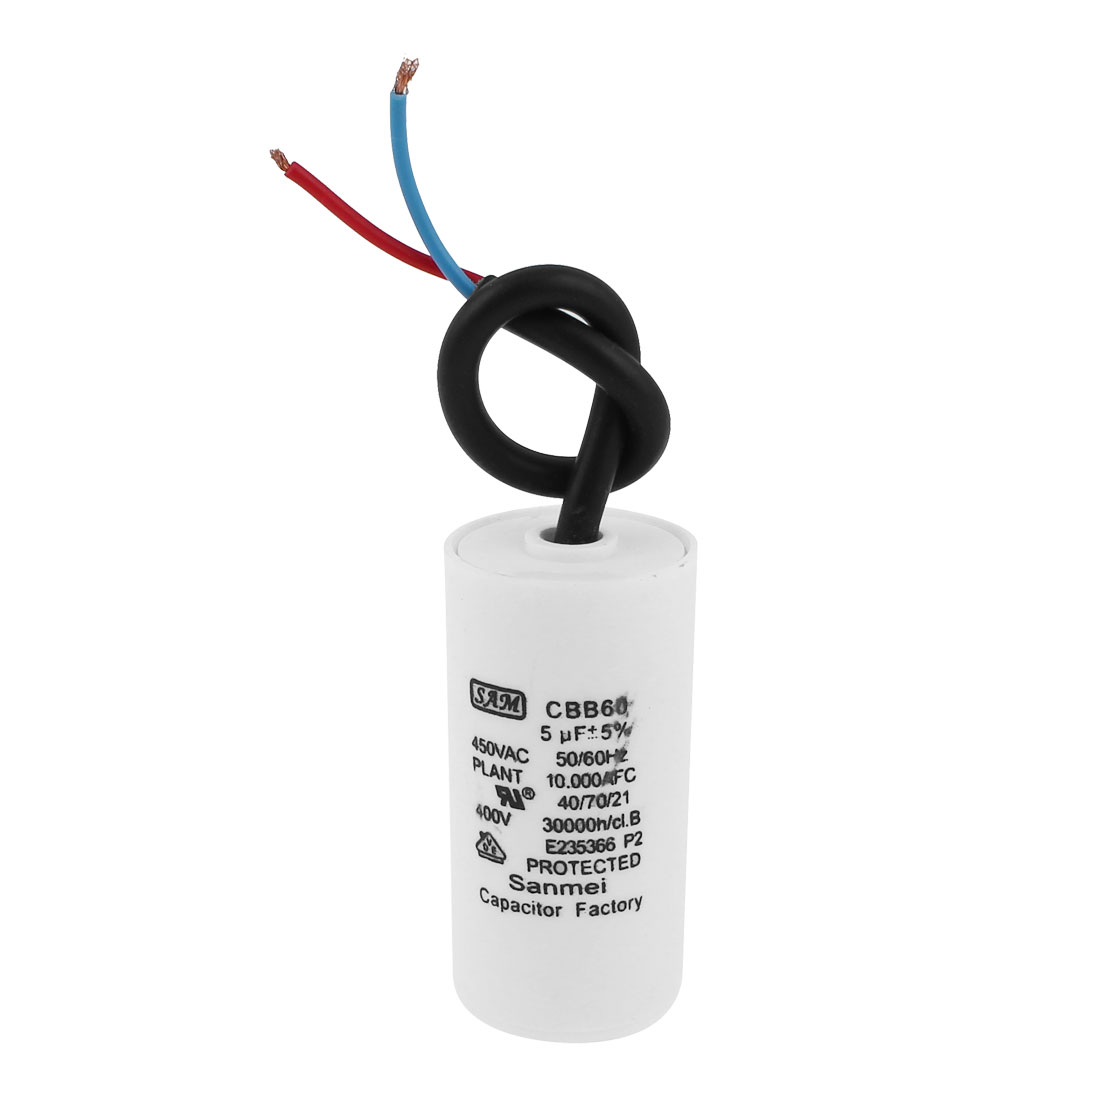 Washing Machine CBB60 AC450V 5uF 5% Wired Motor Run Capacitor